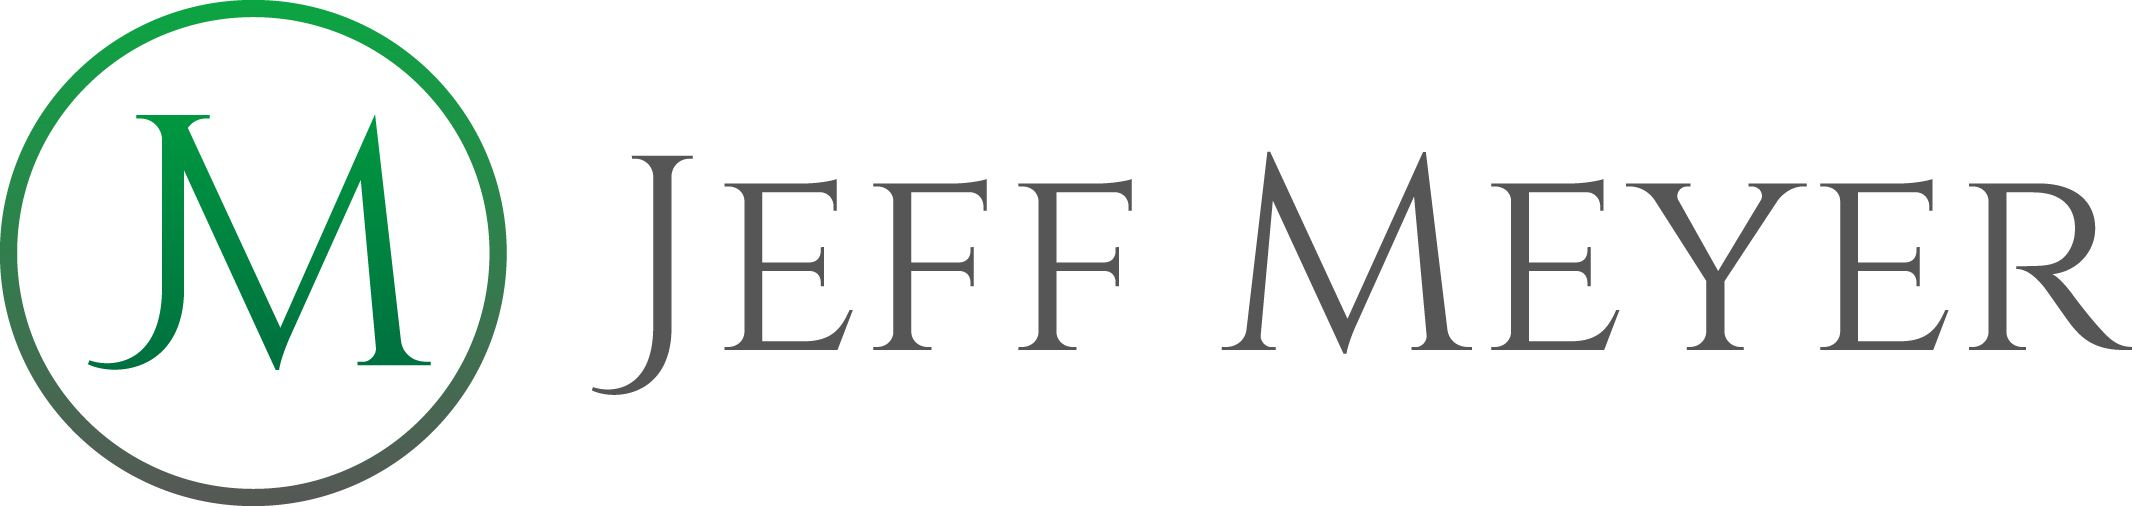 jeffmeyer Logo